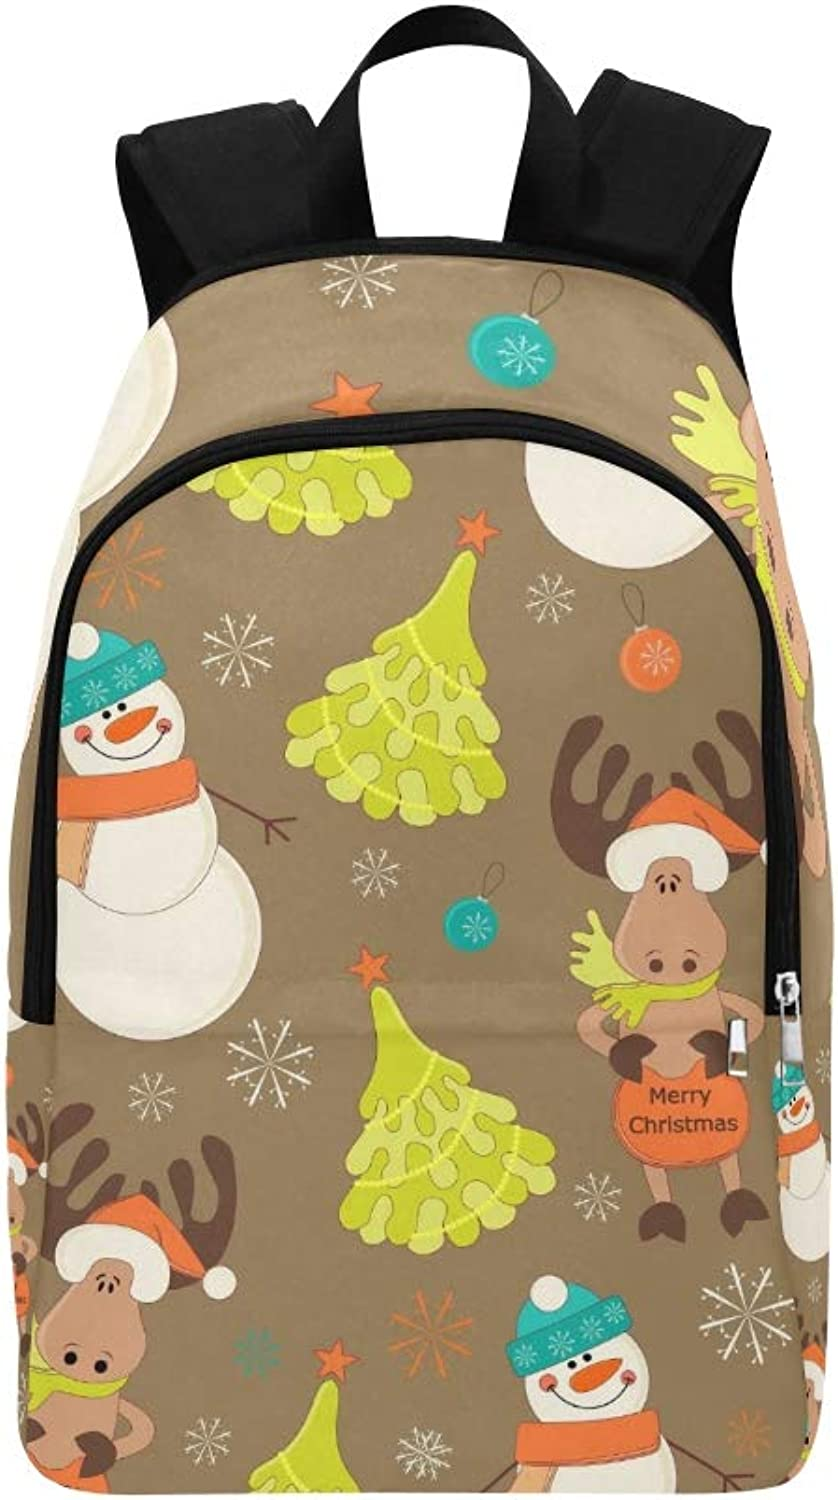 Baby Christmas Casual Daypack Travel Bag College School Backpack for Mens and Women